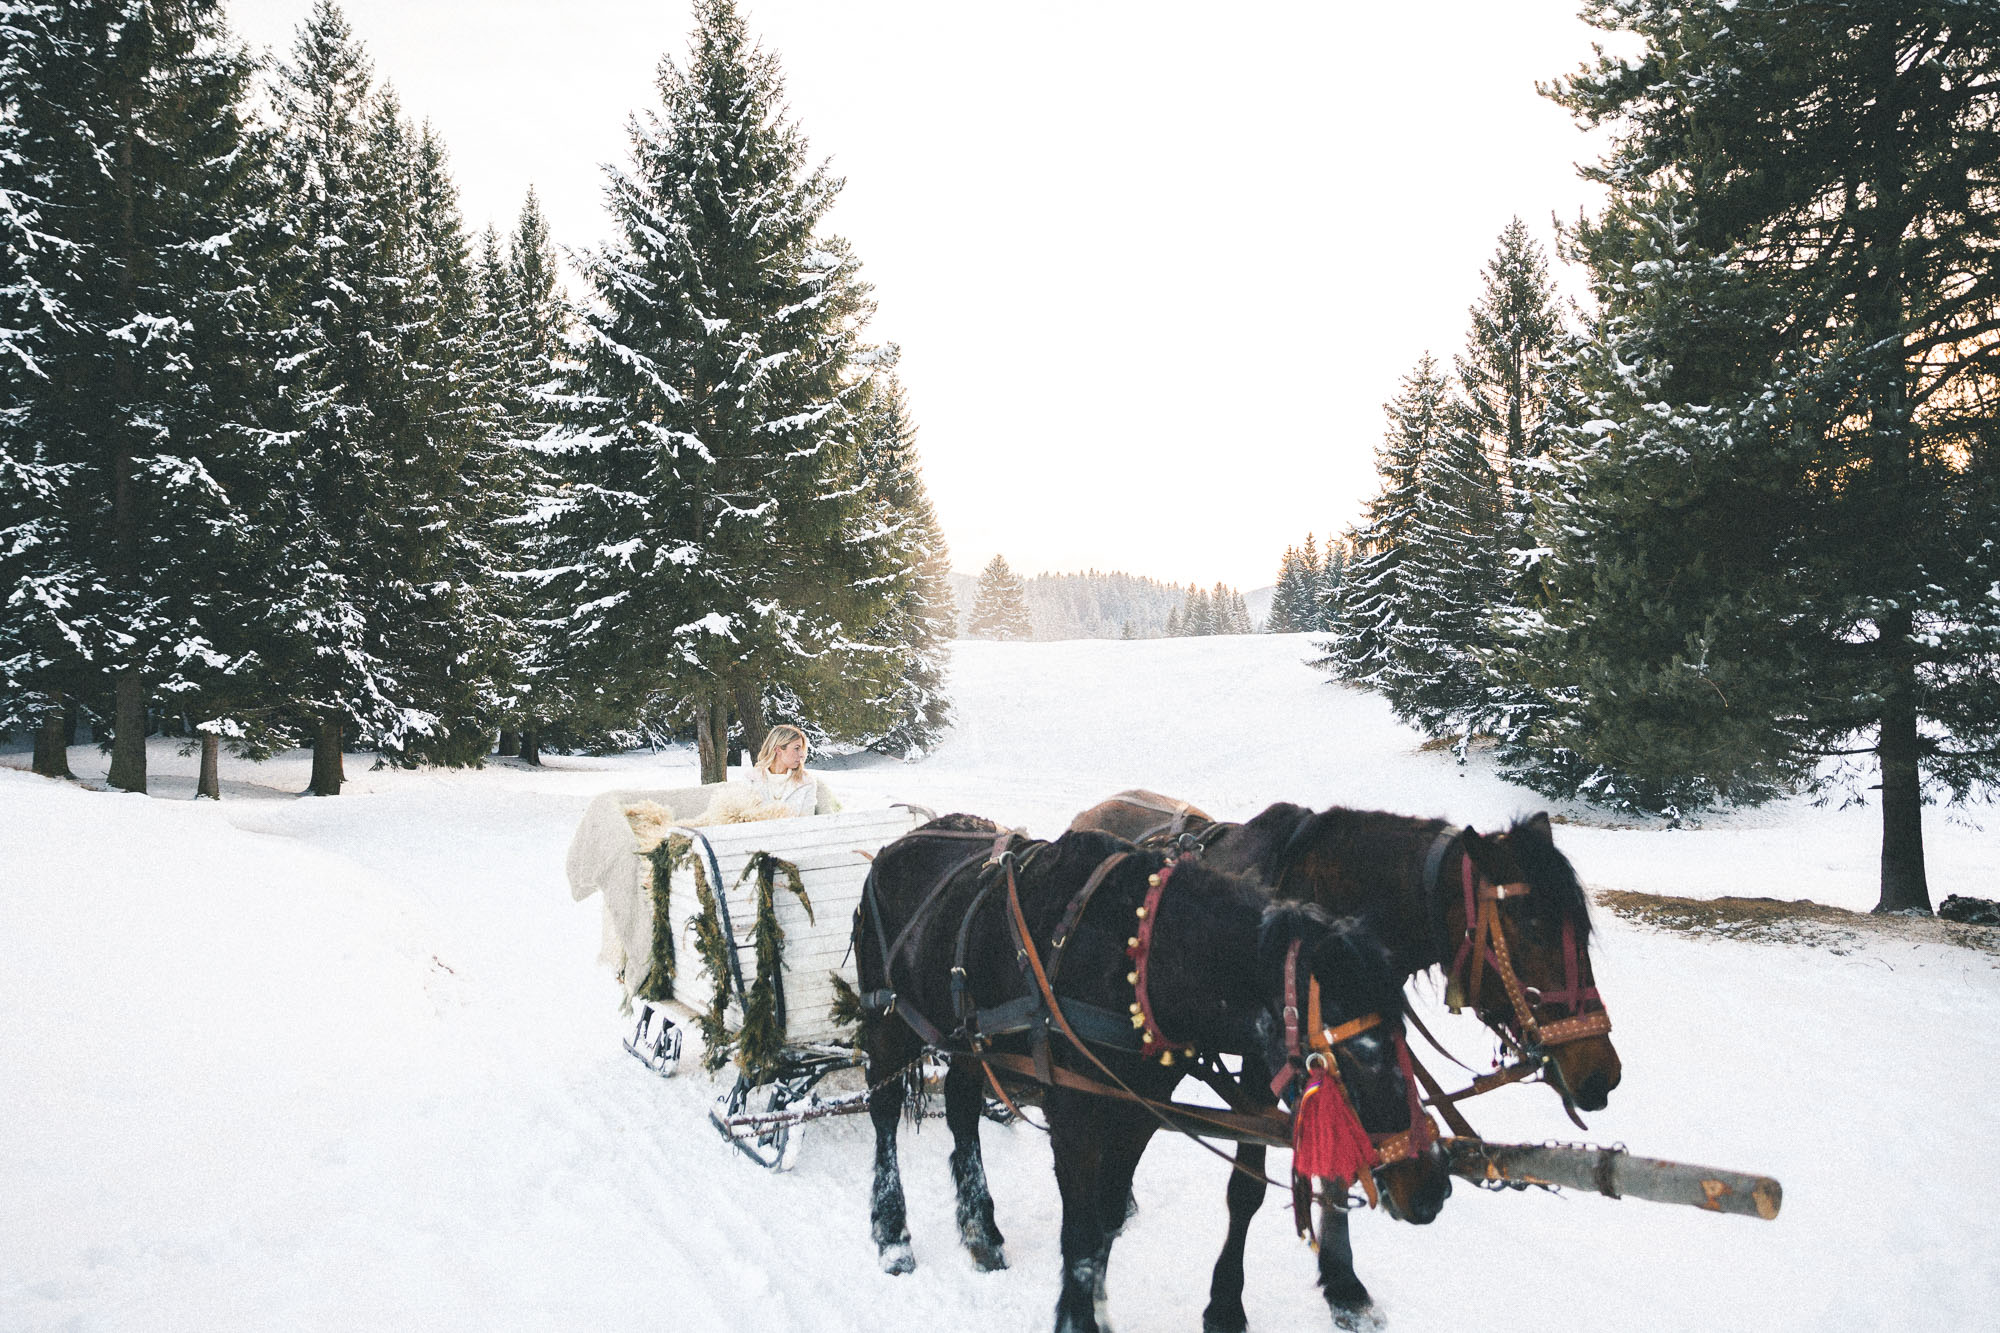 Horse-drawn sleigh ride in Poiana Brasov, Transylvania, Romania